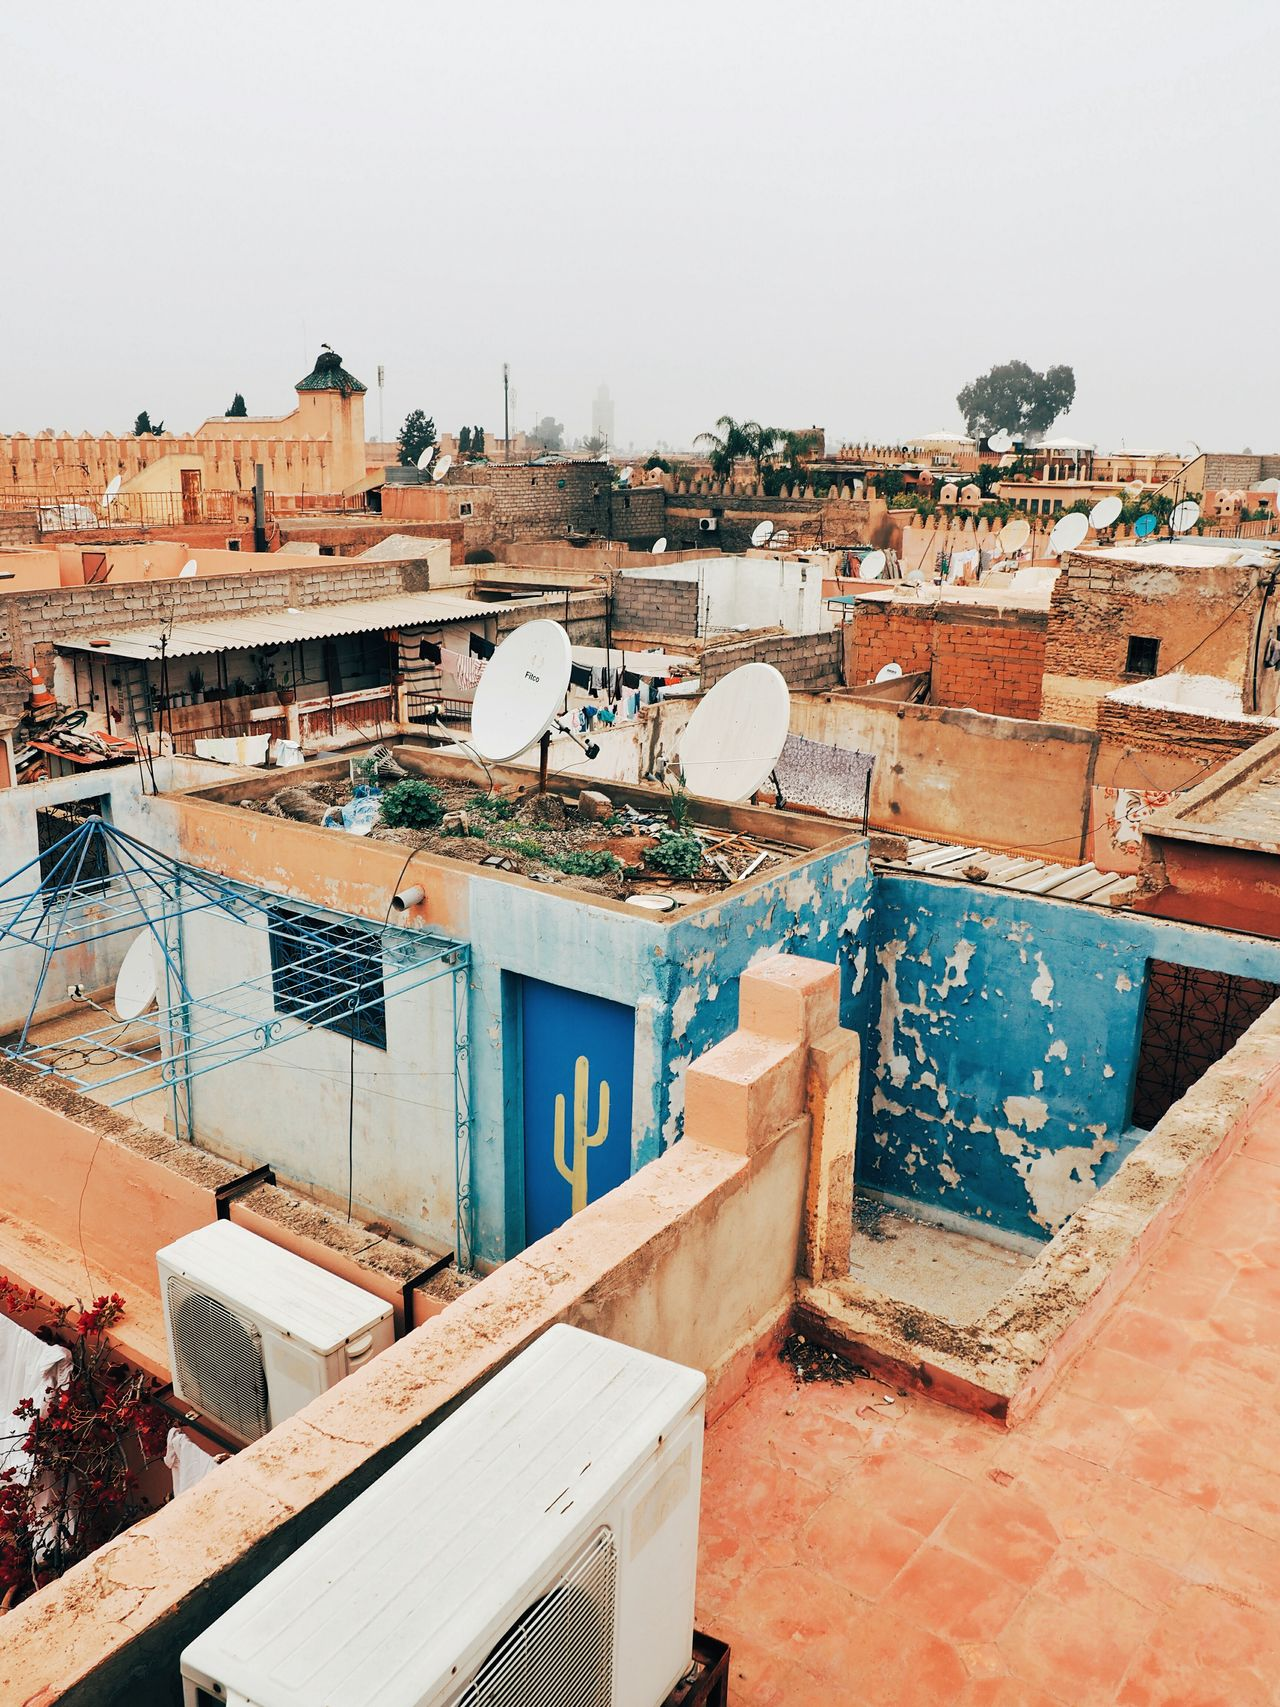 No People Architecture Sky Day Marrakech Morocco Medina Medina Marrakech Marrakech Morocco Architecture_collection Africa Urban Density Urban Living Urban Architecture Developing Country Architectural Style Structure Structures And Architecture Satellite Dishes